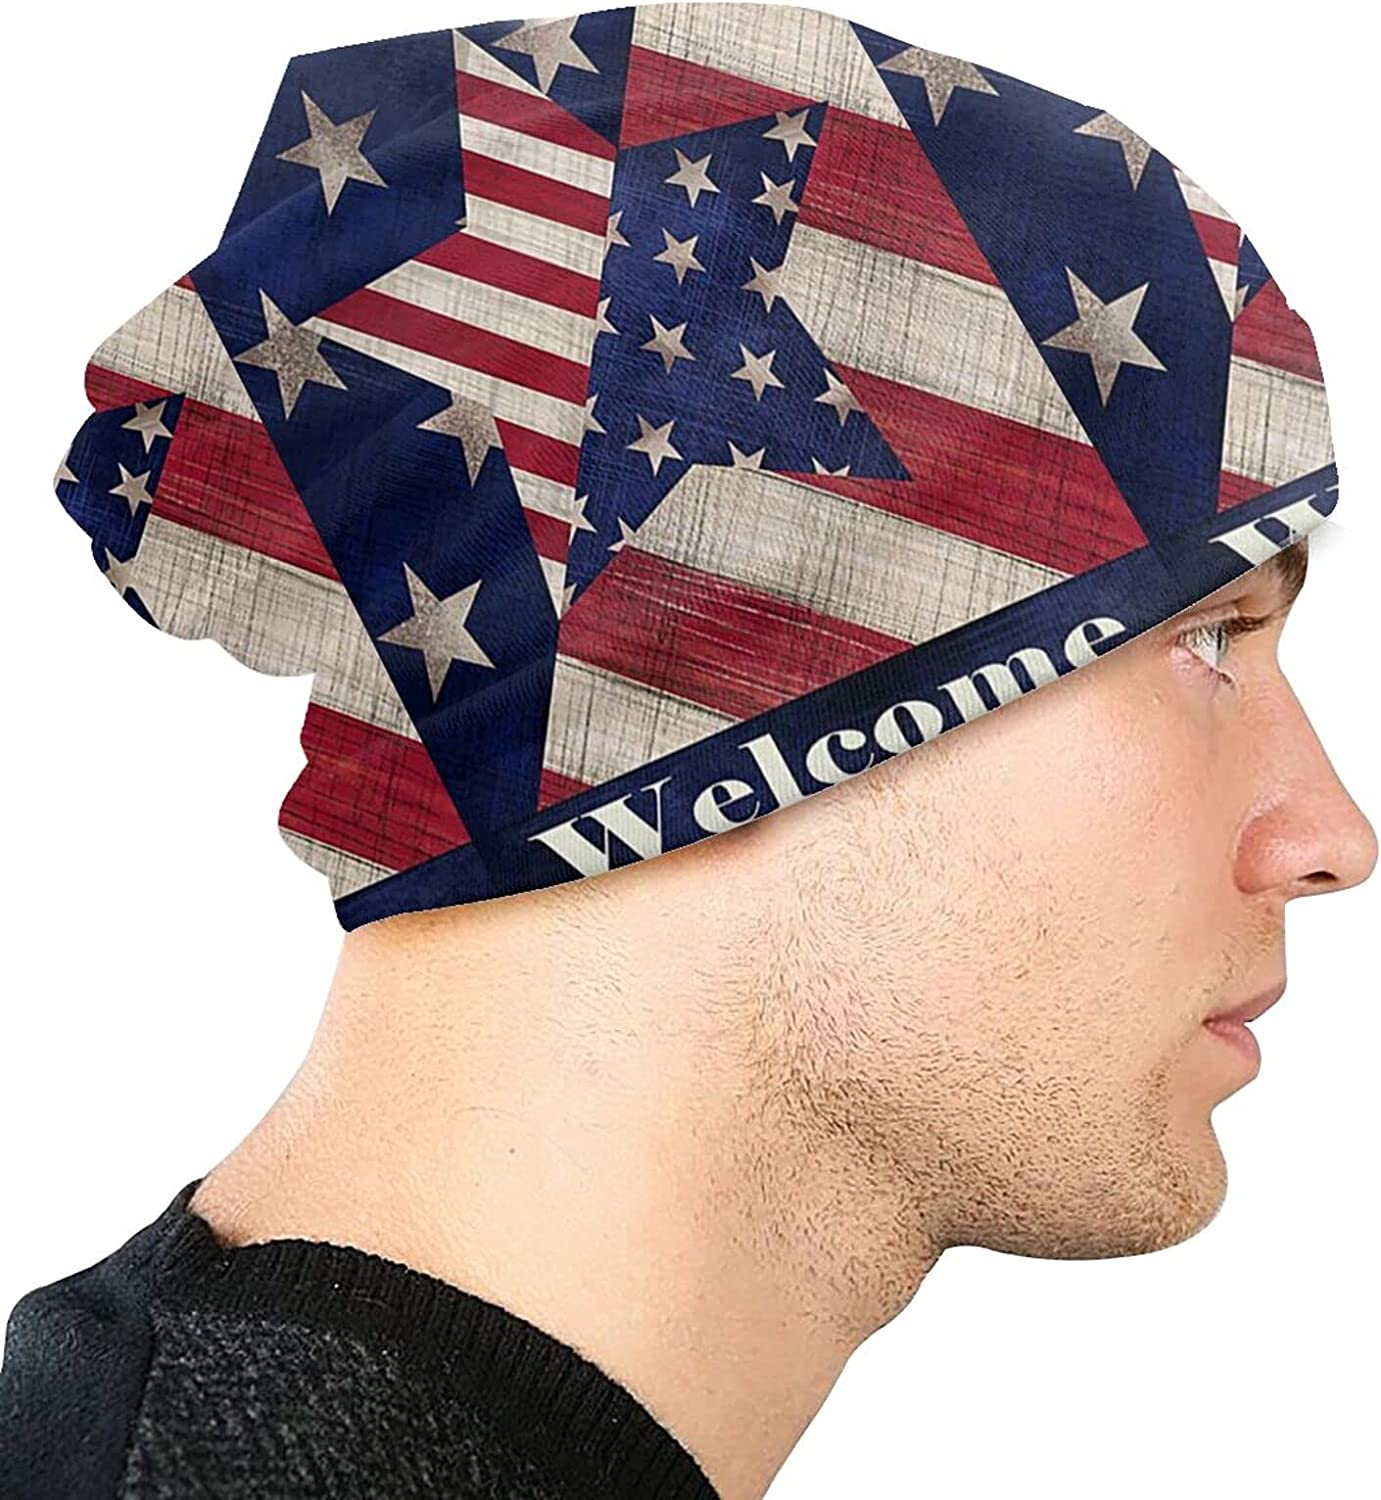 ZENGCY America 1 year warranty Independence Day Adult Polar Fashion Fle Knit Hat Max 81% OFF